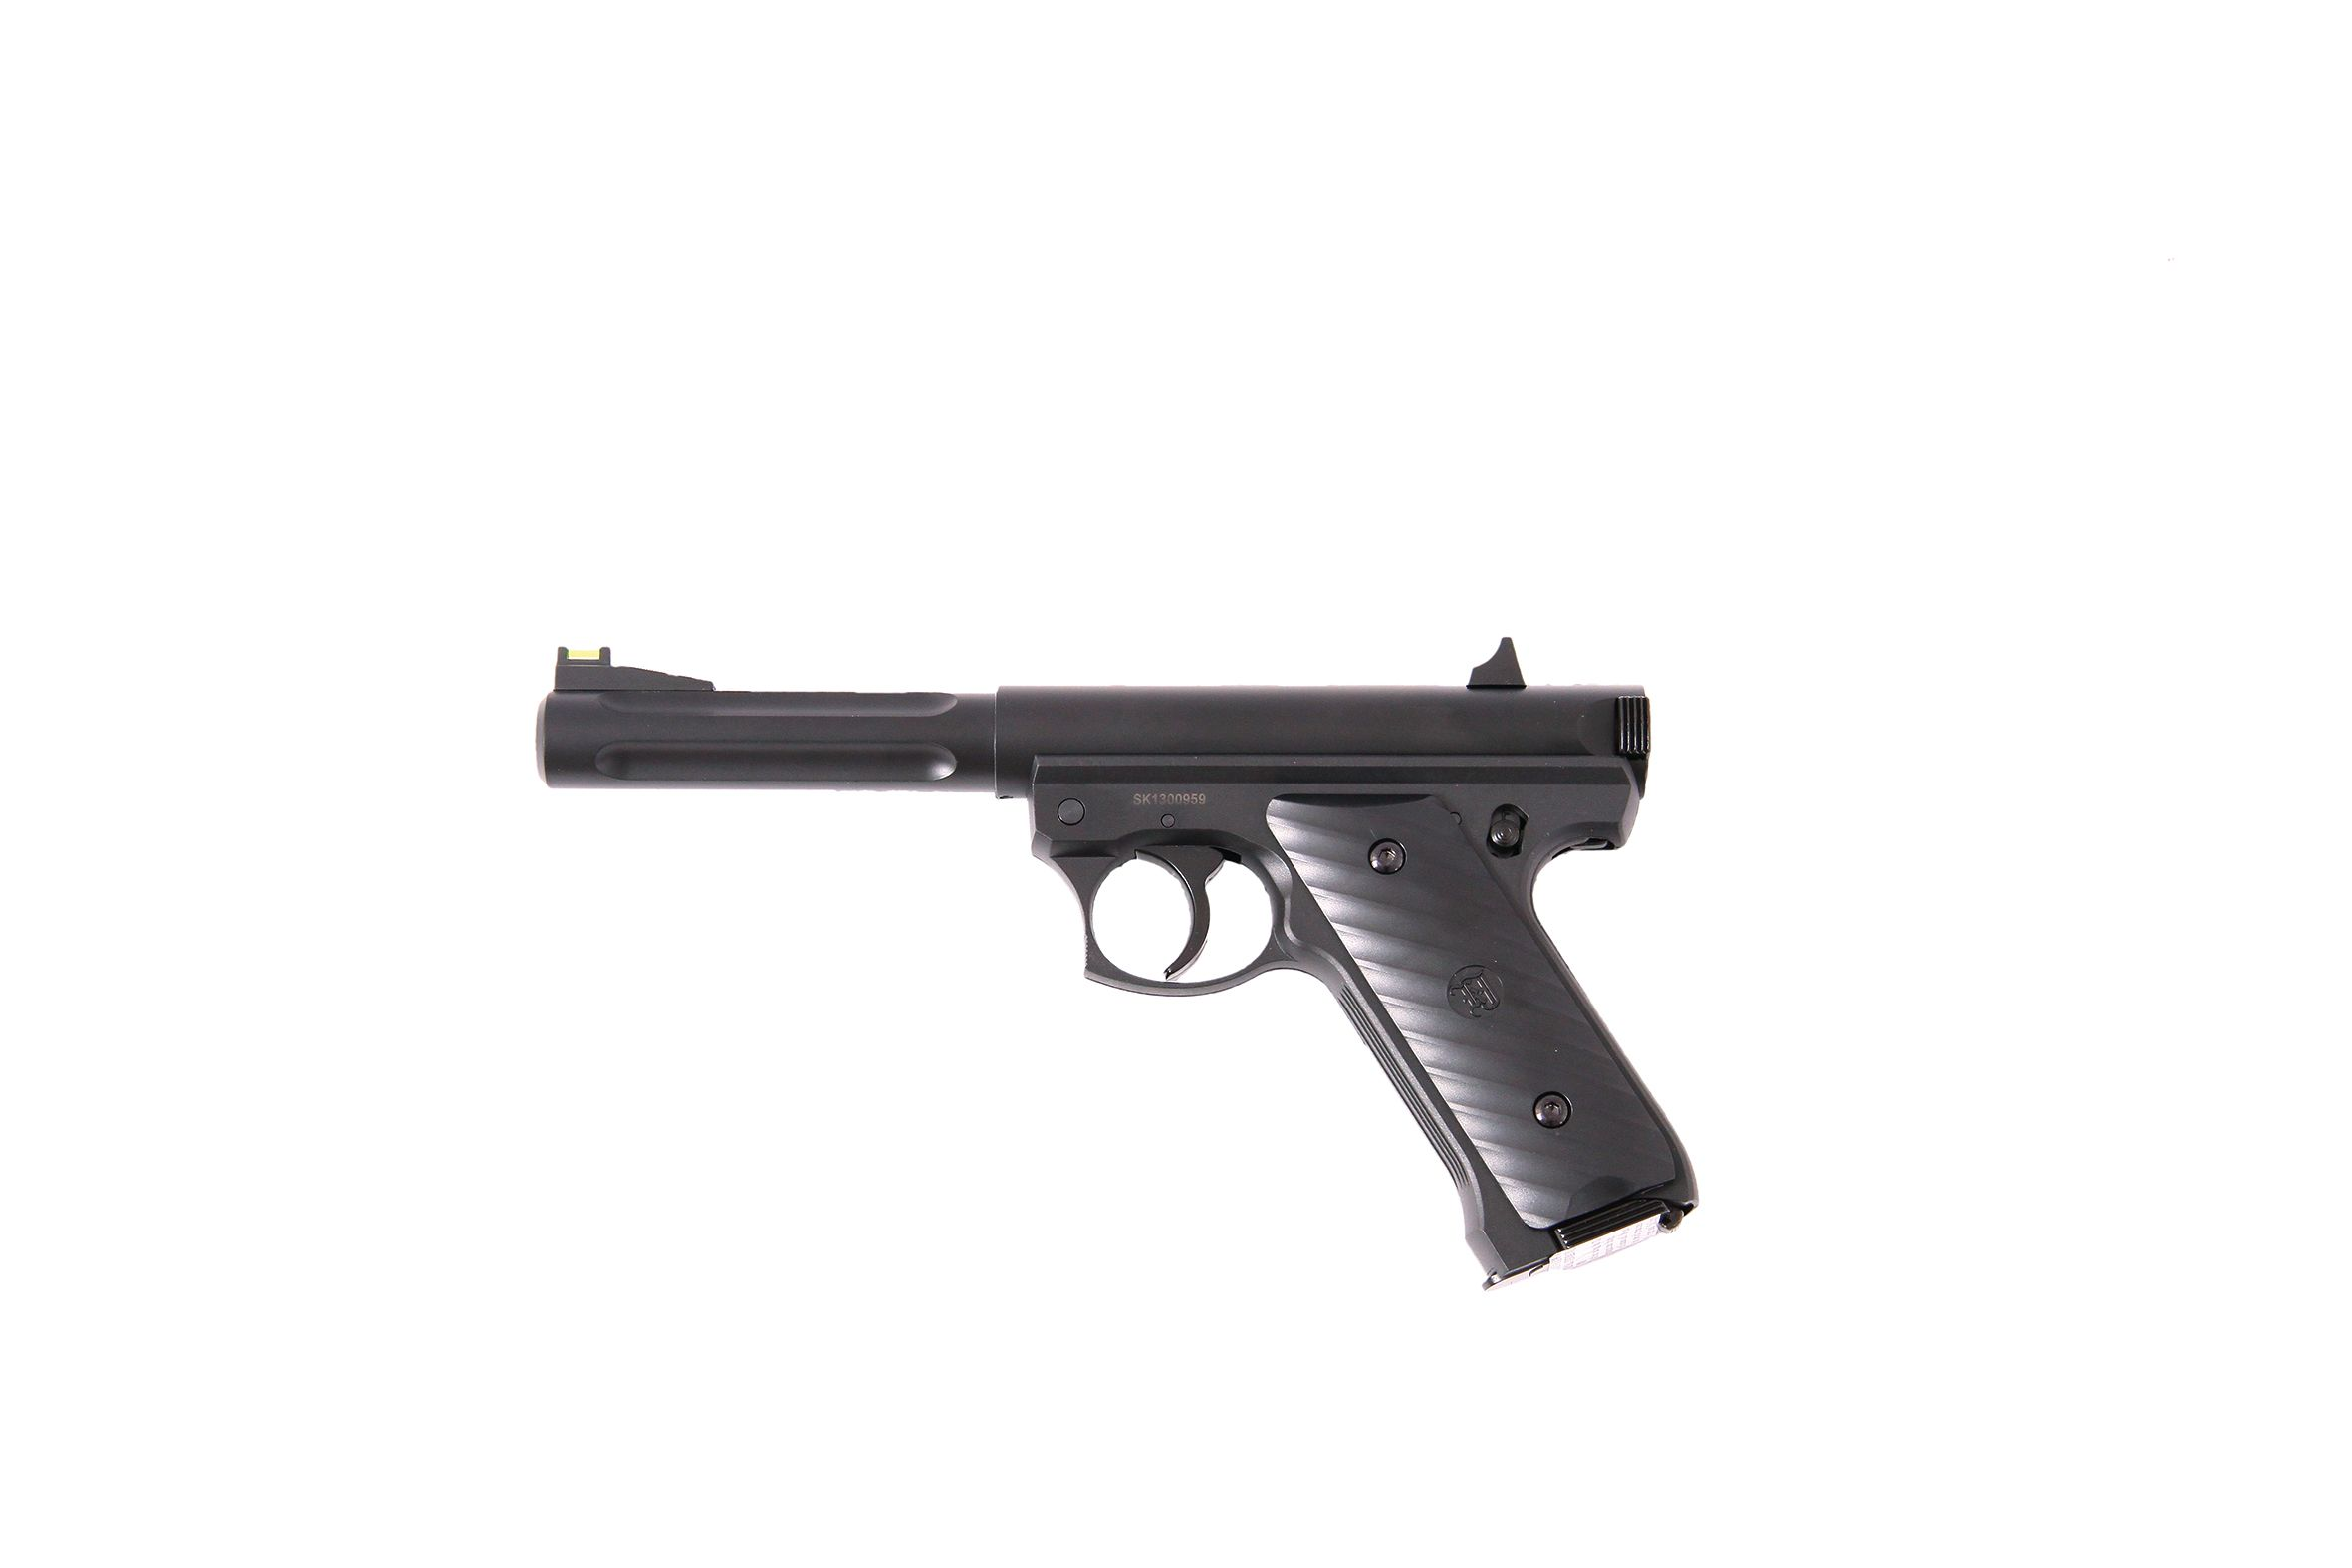 PISTOLA MK2 CO2 FULL METAL 4.5